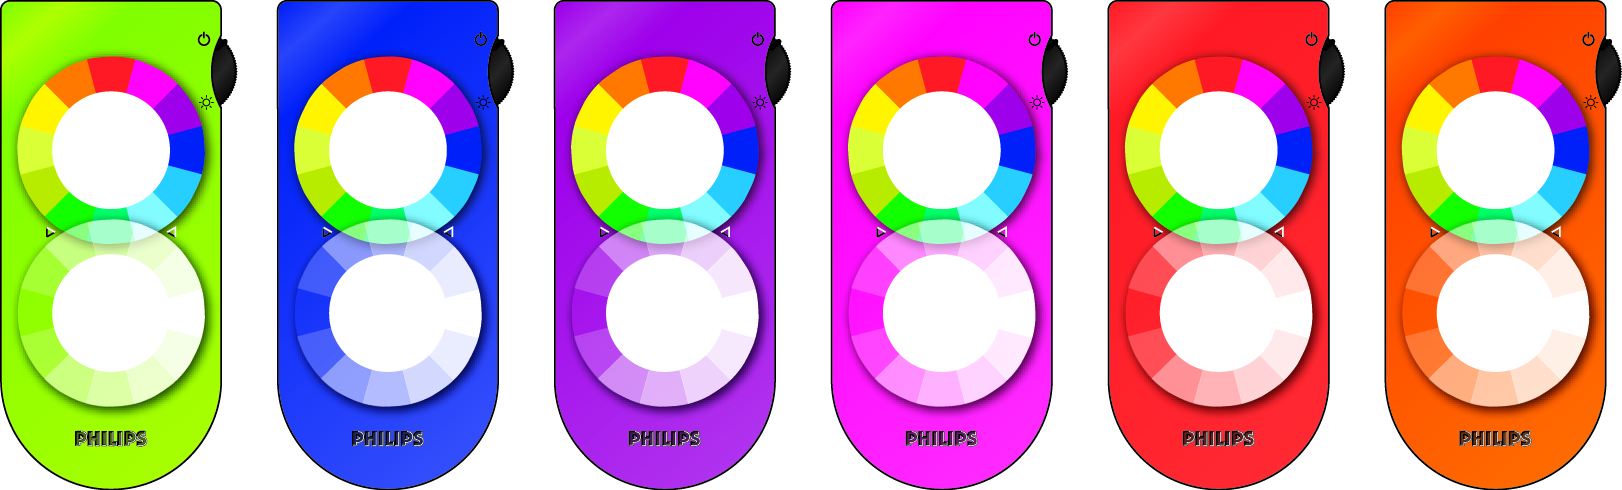 Color variations of the remote control